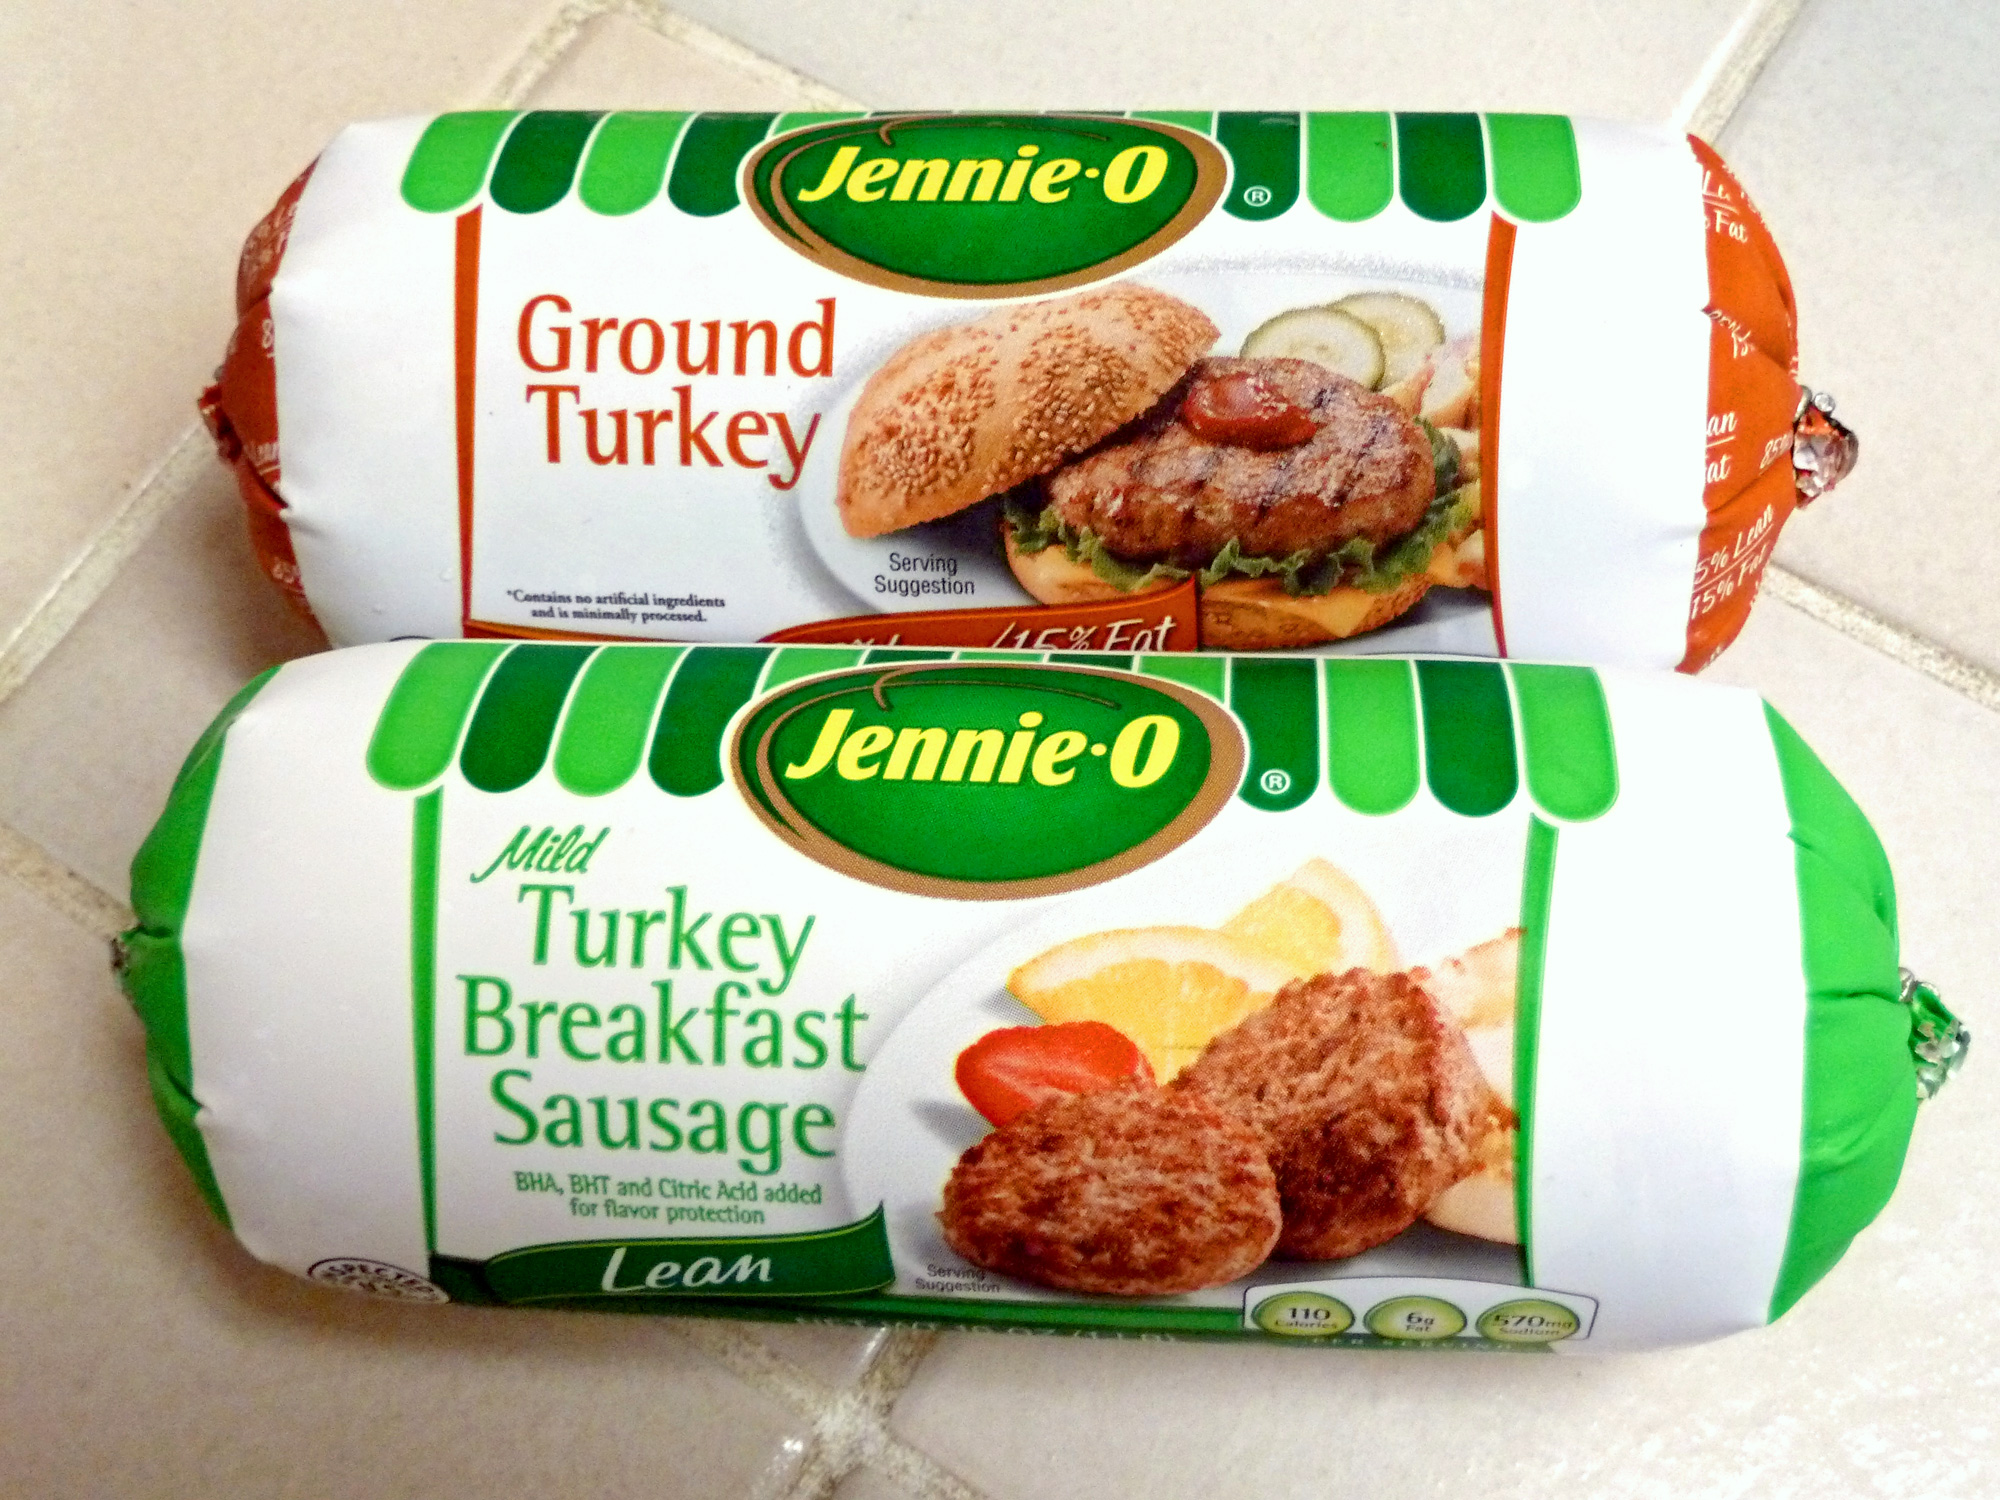 Jenni-O® brand of ground turkey and turkey breakfast sausage